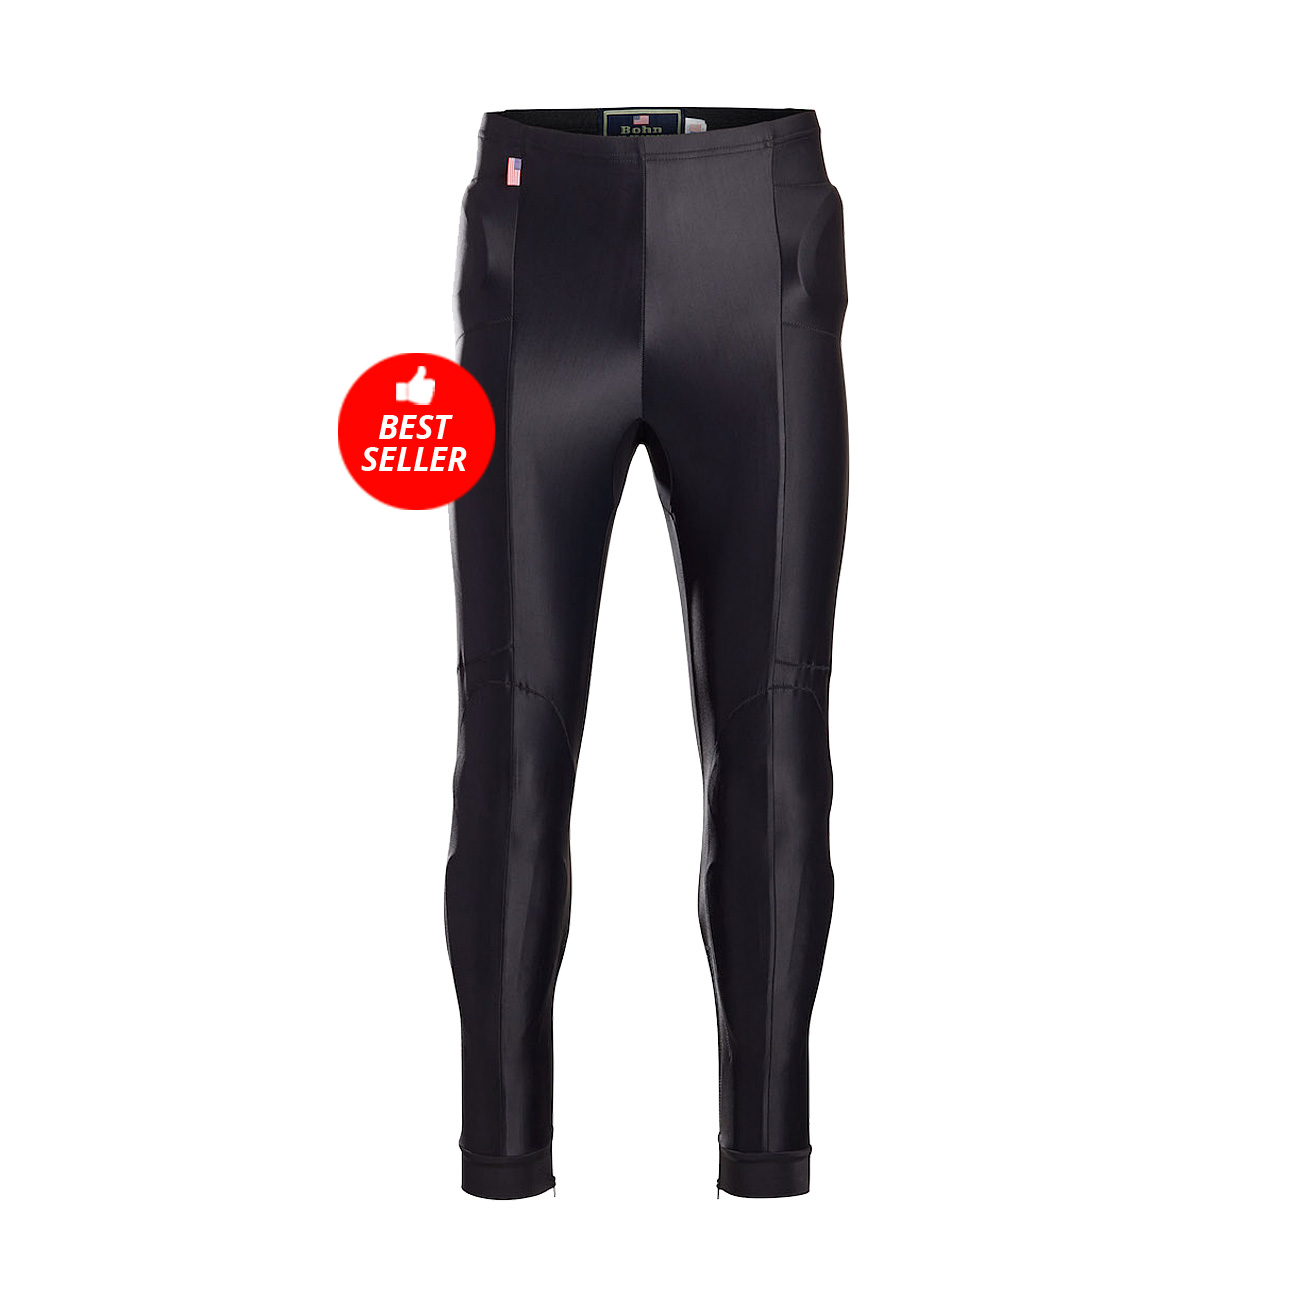 Bohn-Body-Armor-Adventure-Pants-Black-Fr